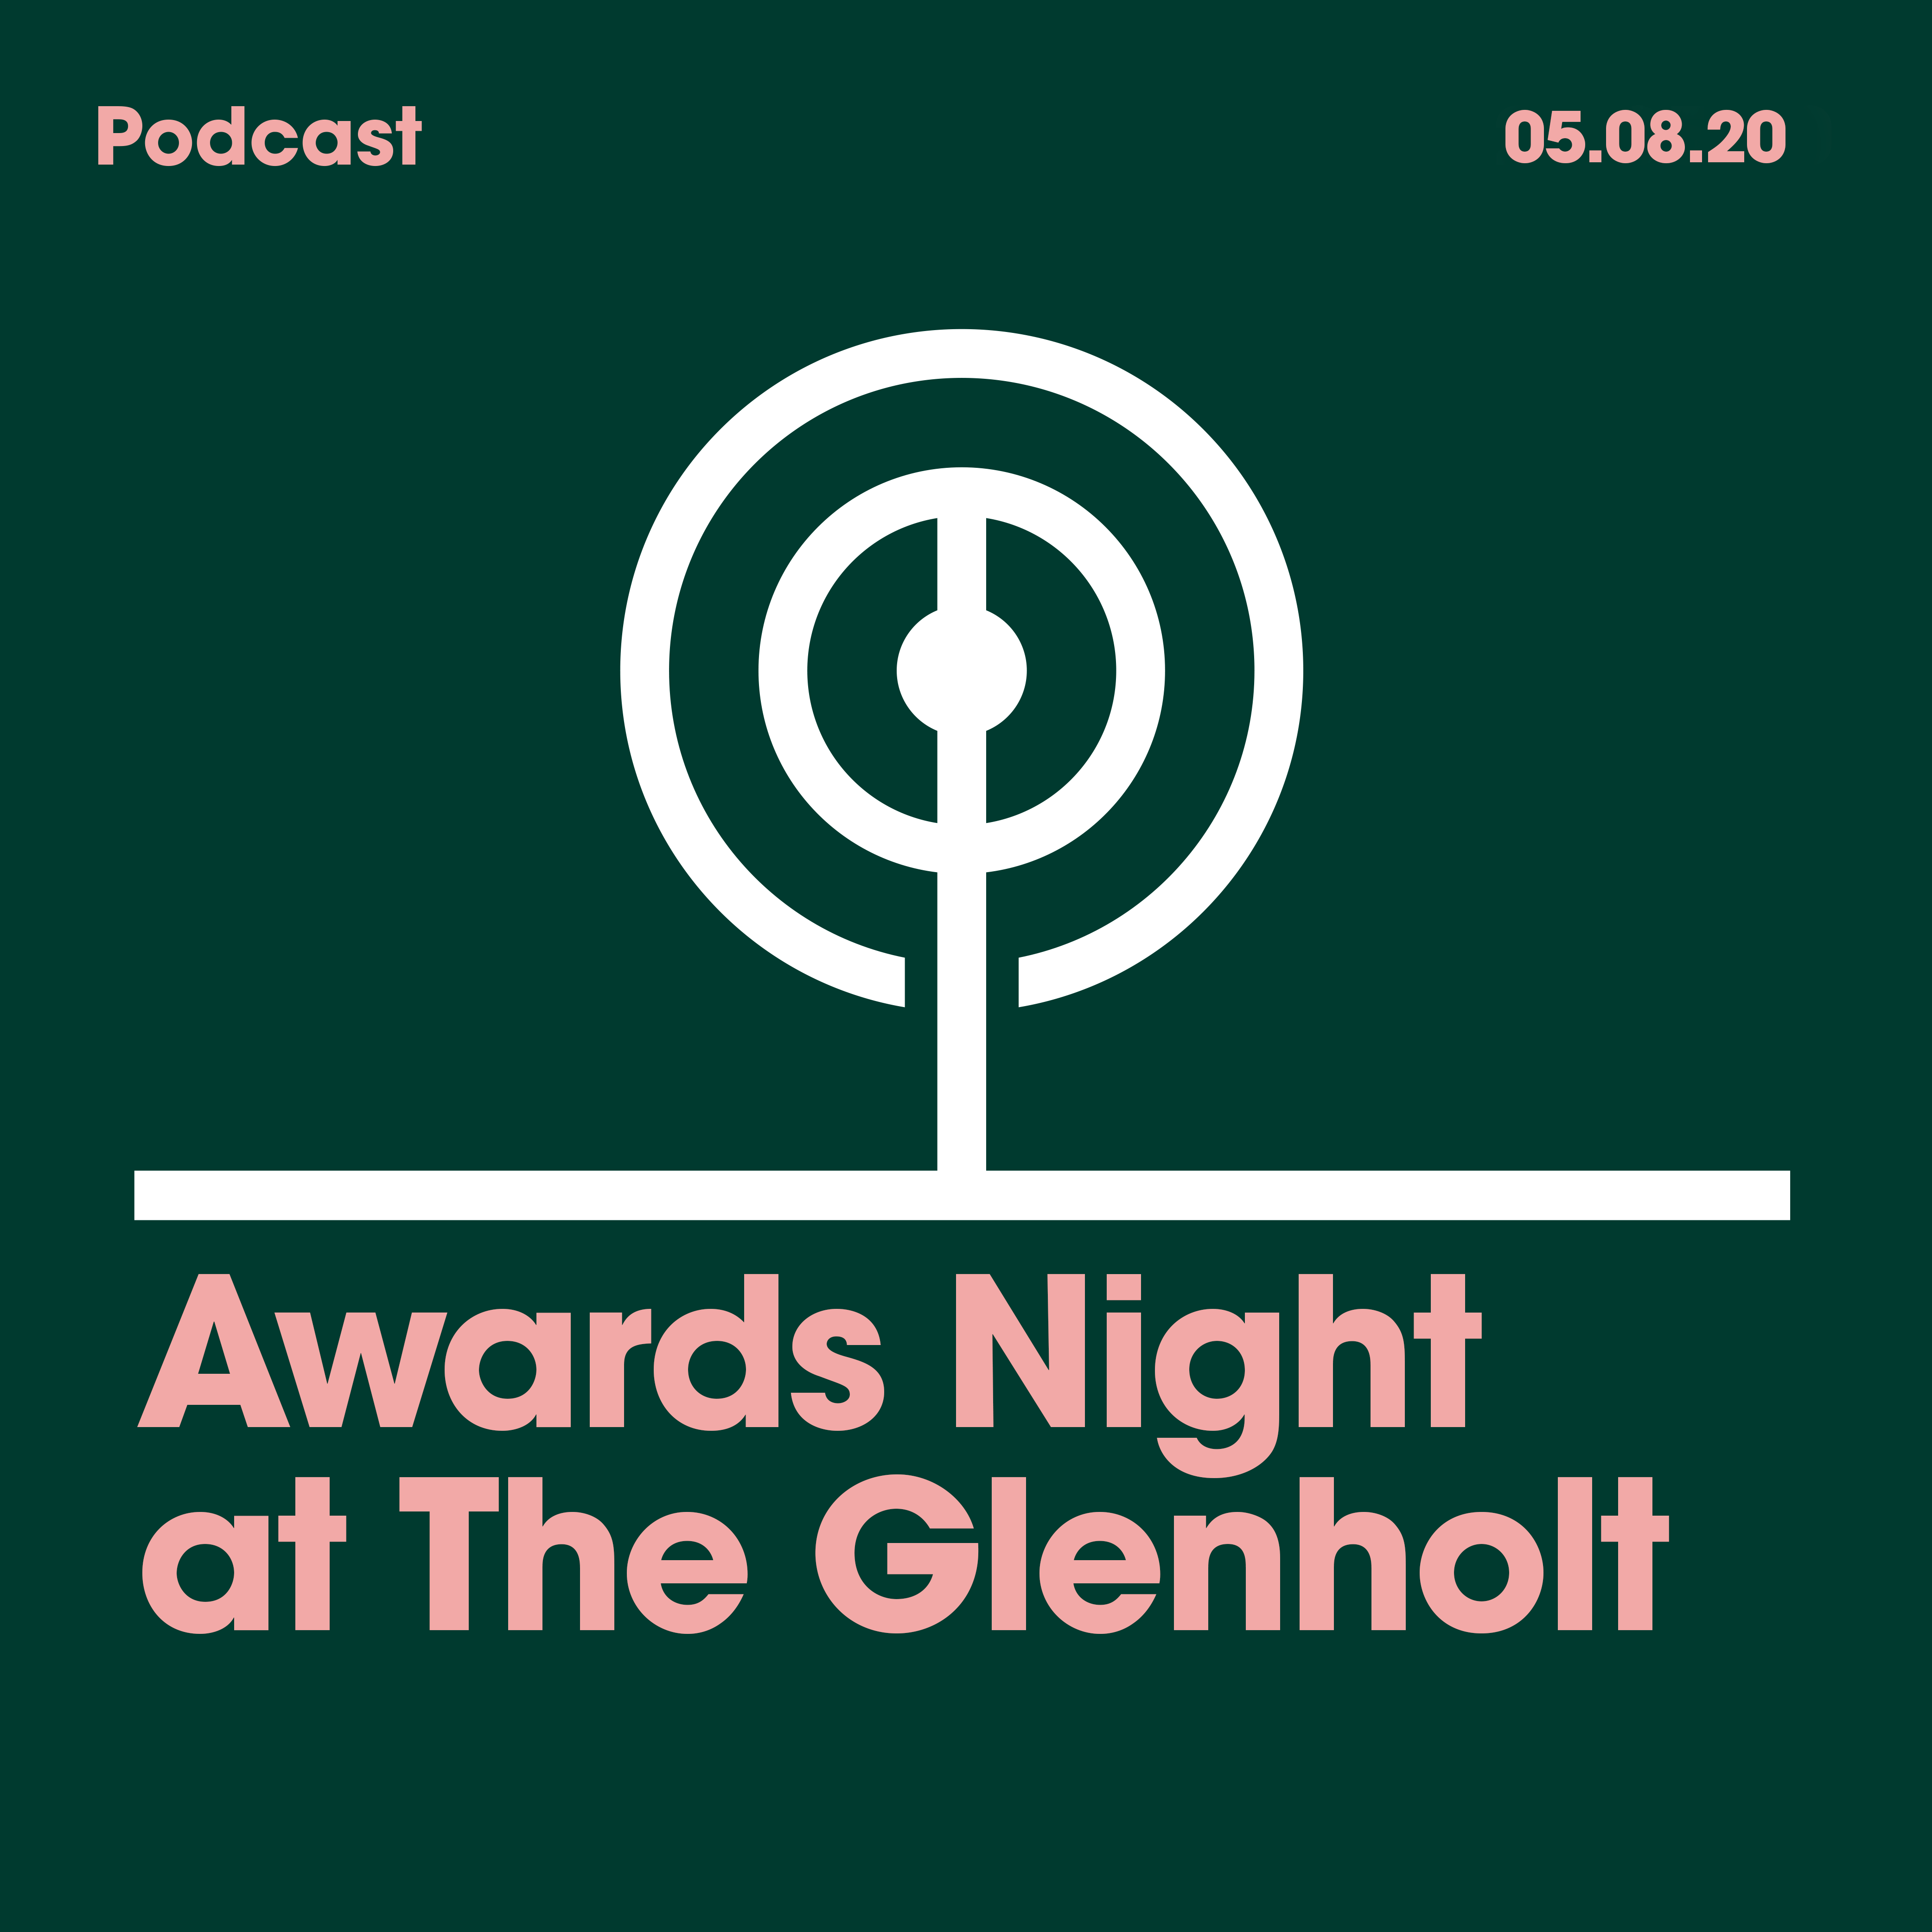 05.08.20. Awards Night at The Glenholt